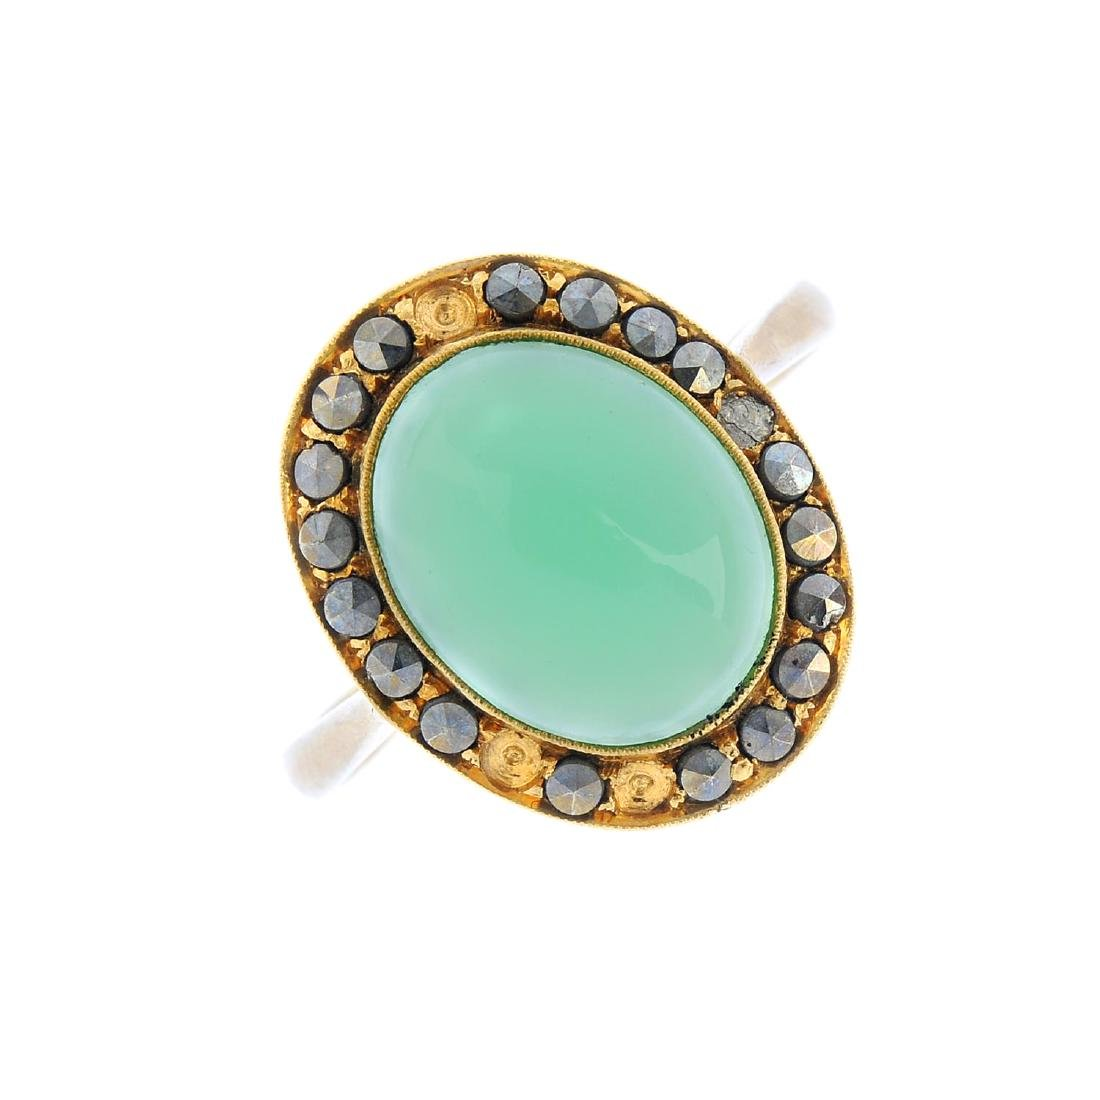 A chrysoprase and marcasite ring. The oval chrysoprase